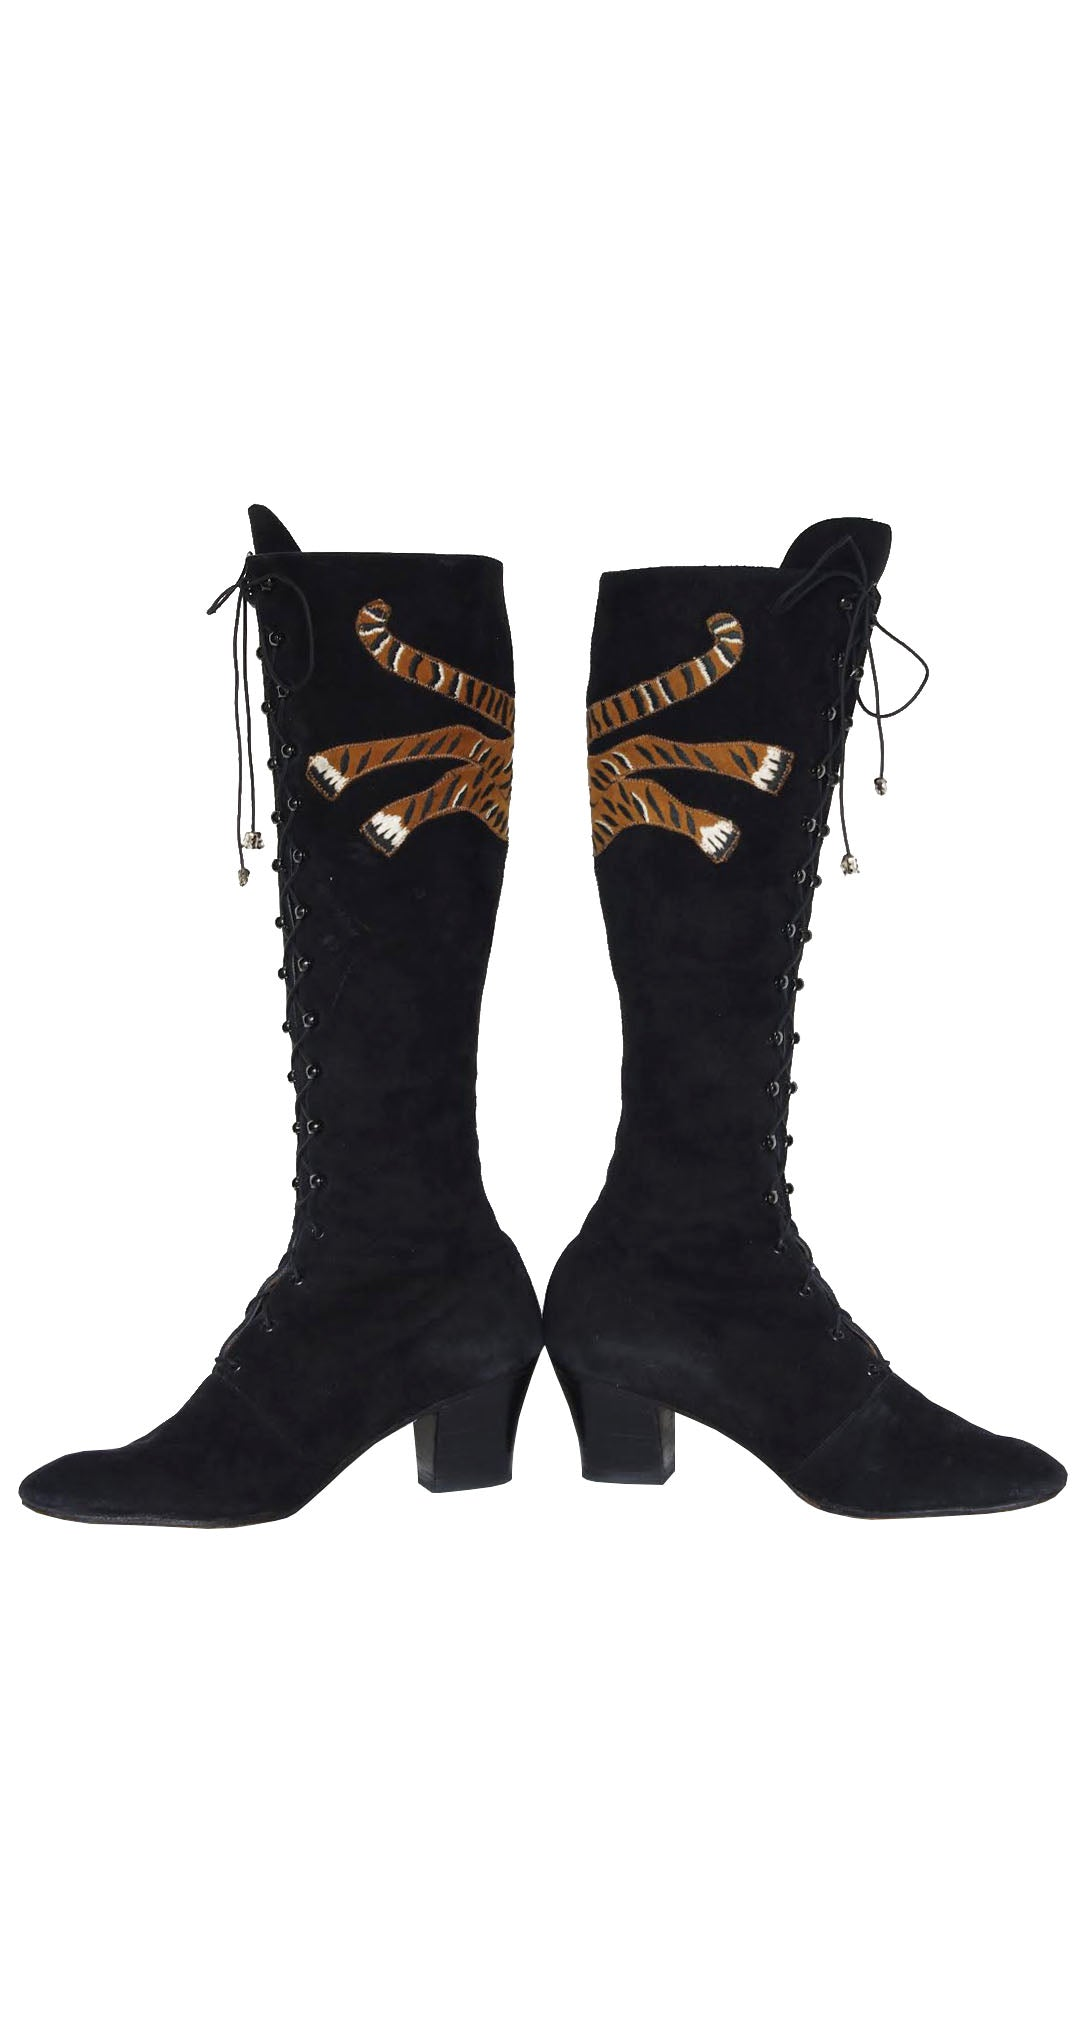 c. 1970 Embroidered Tiger Black Suede Lace-Up Boots